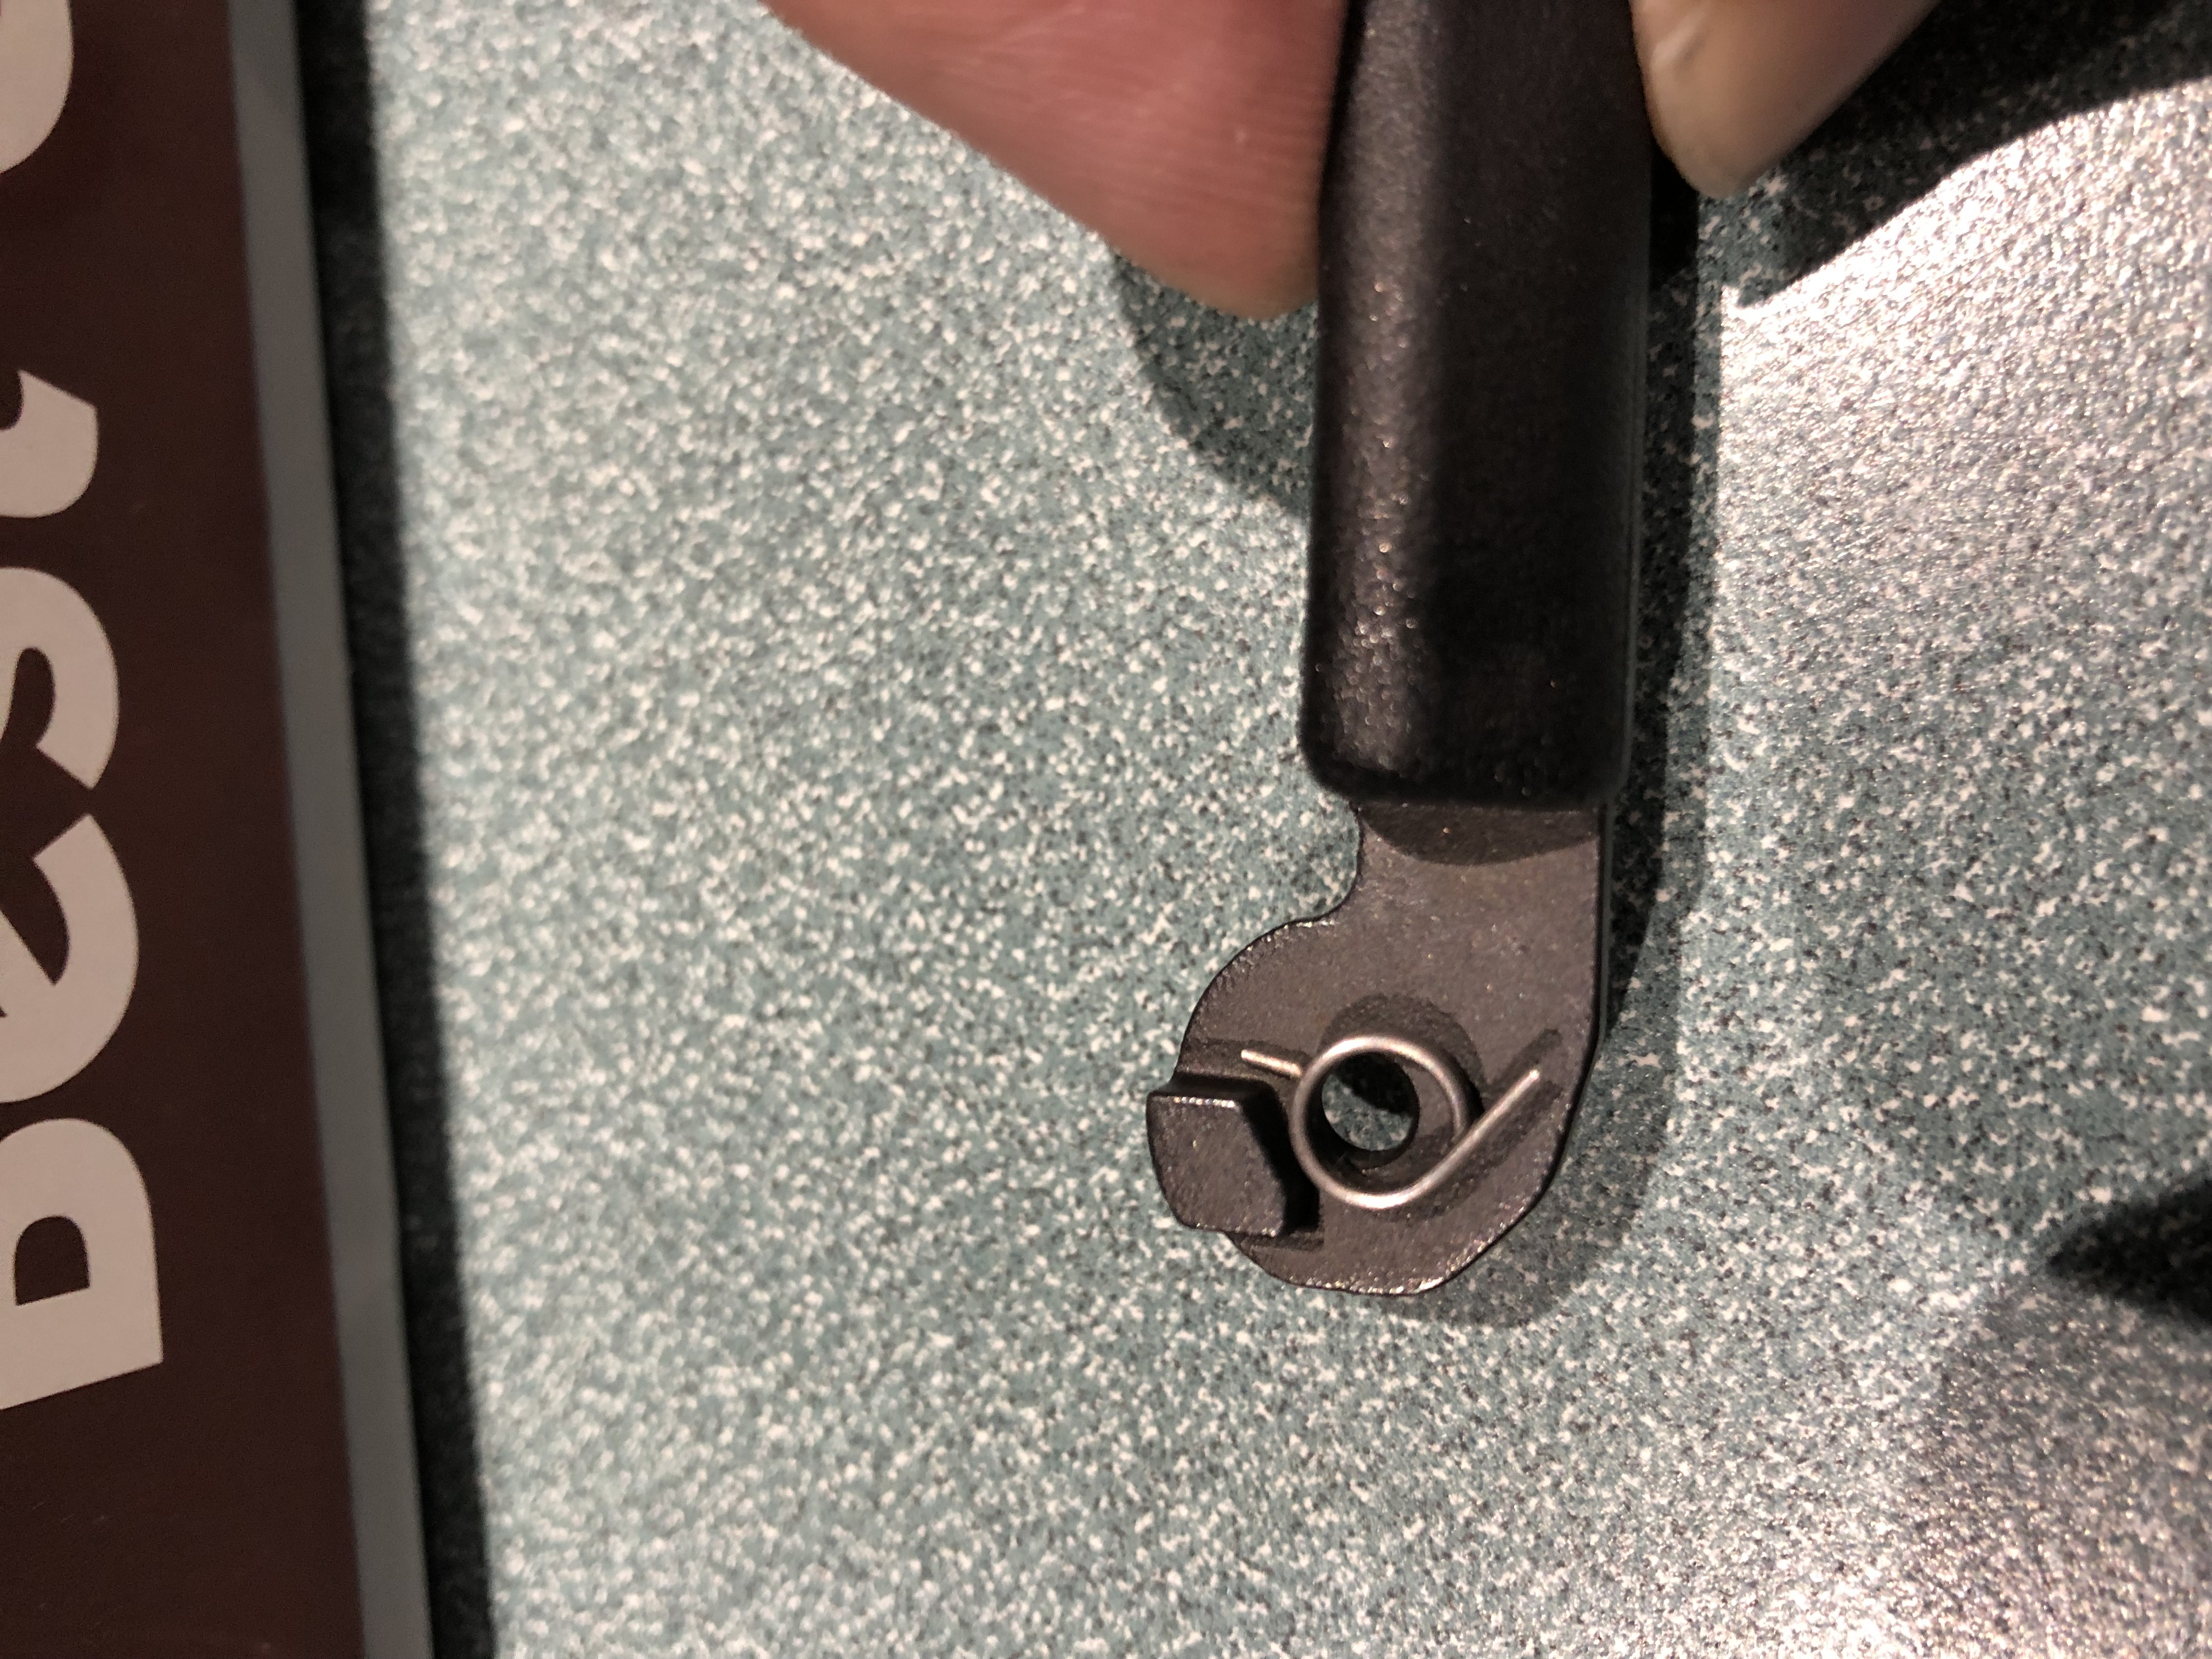 HK 630, 770, 940 - Cocking Lever (Charging Handle) Removal and Replacement-15.jpg